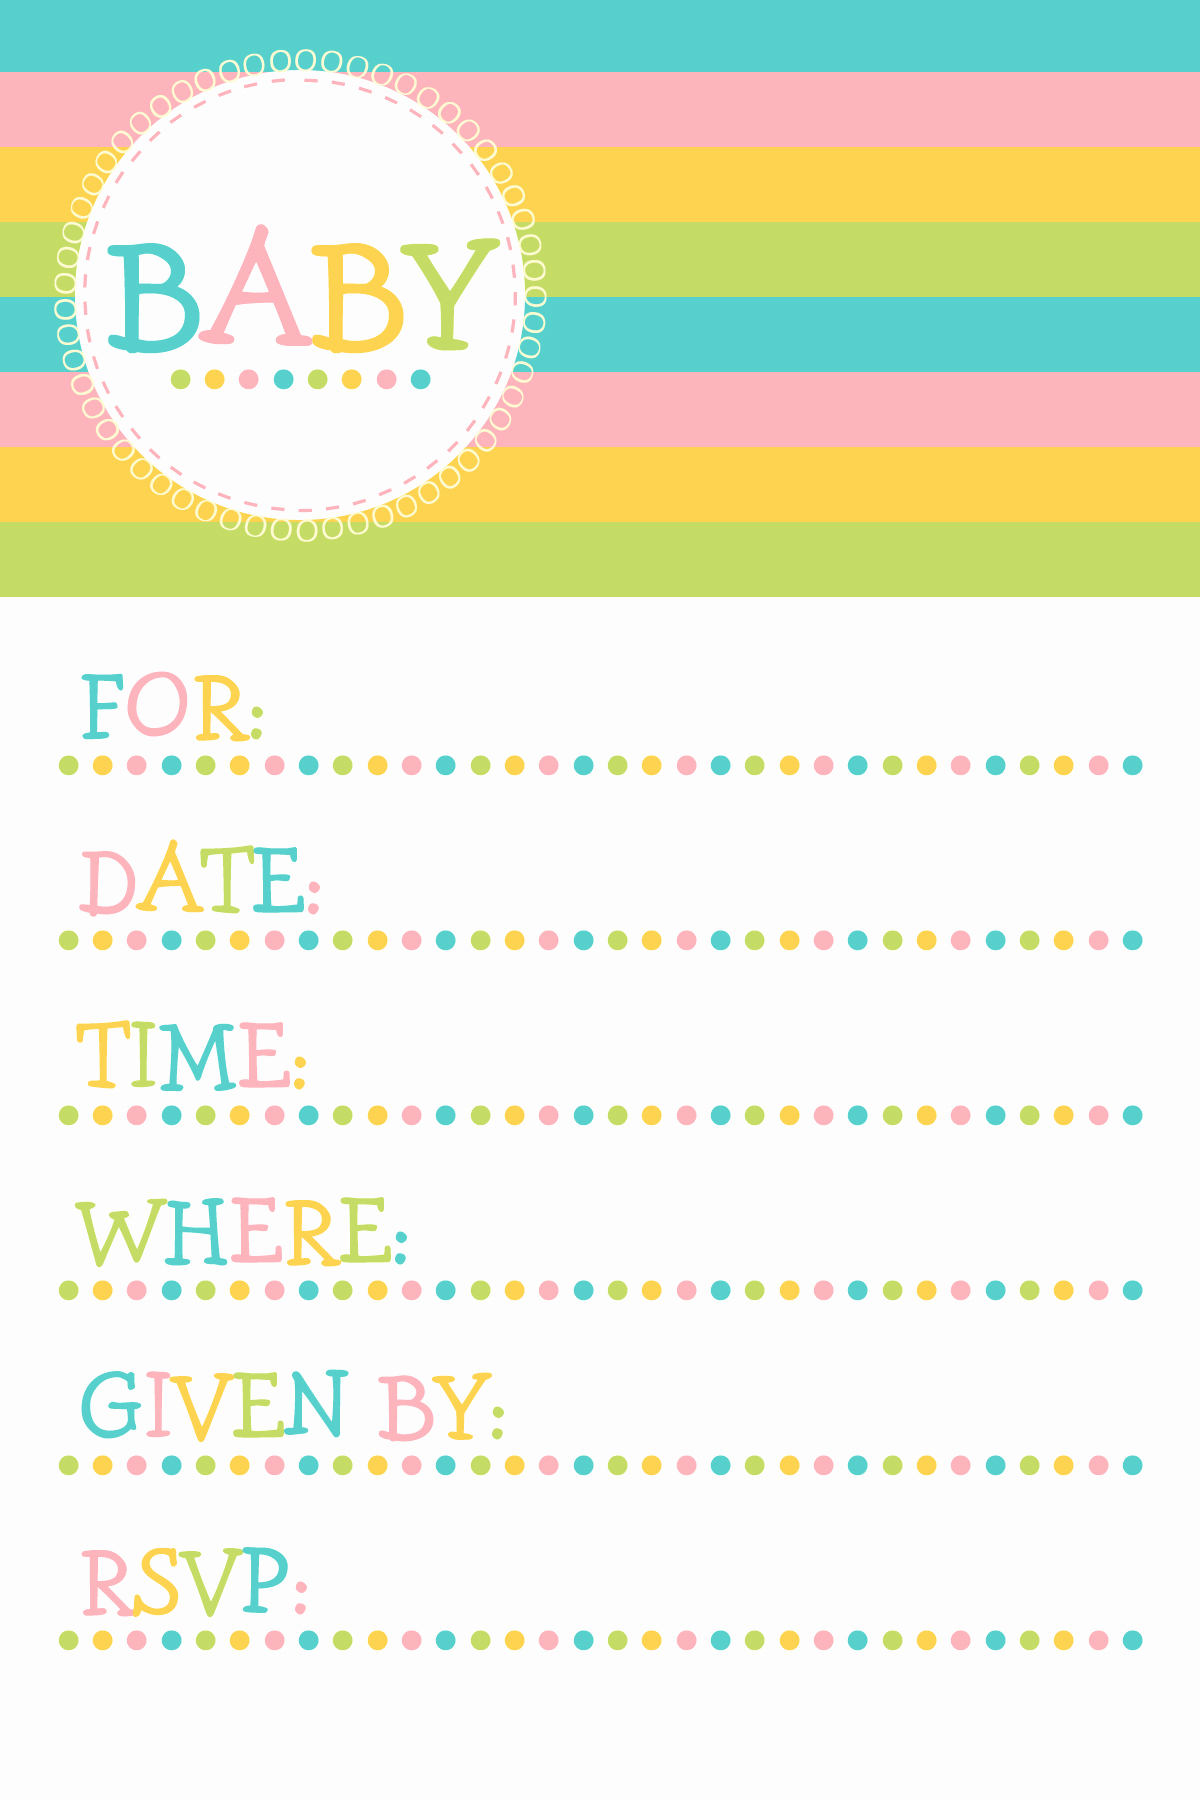 Free Baby Shower Invitation Templates Beautiful Baby Shower Invitation Templates